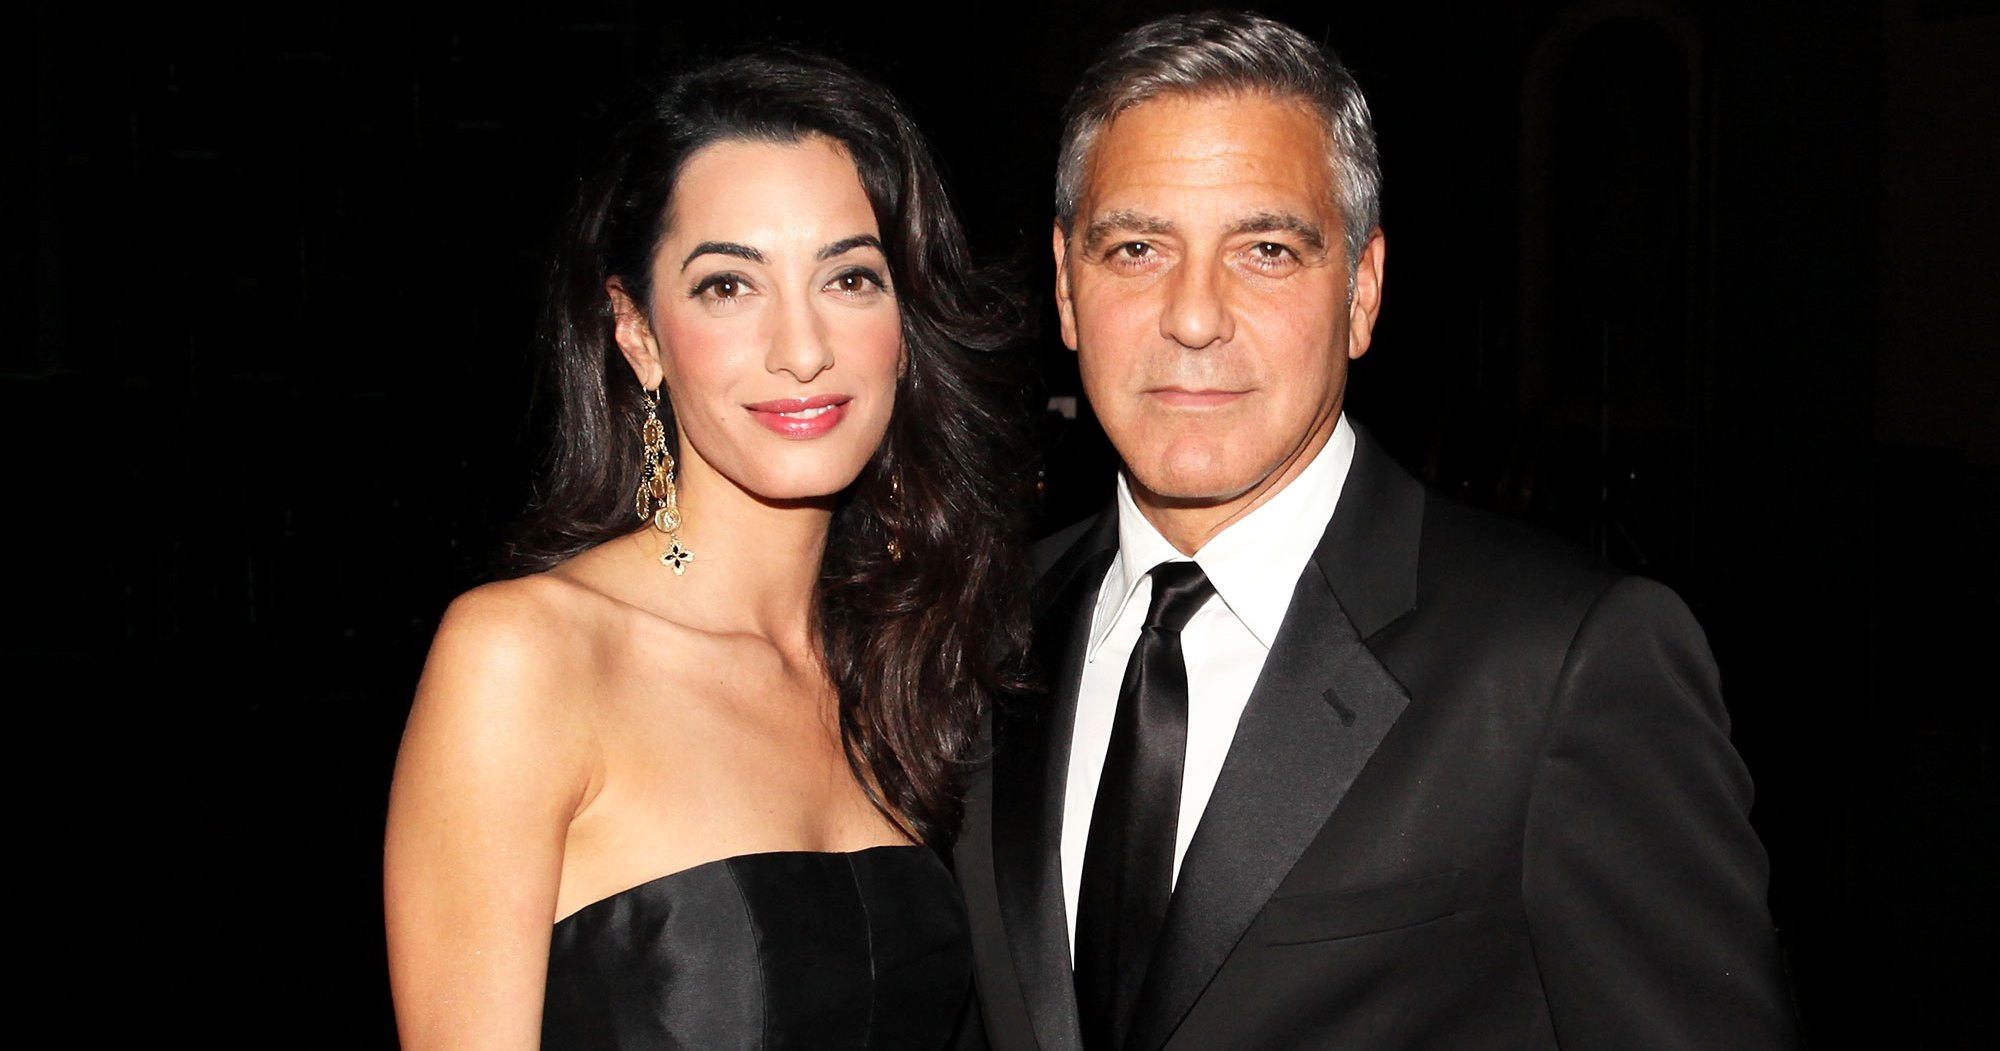 Why George and Amal Clooney Didn't Attend Princess Eugenie's Wedding